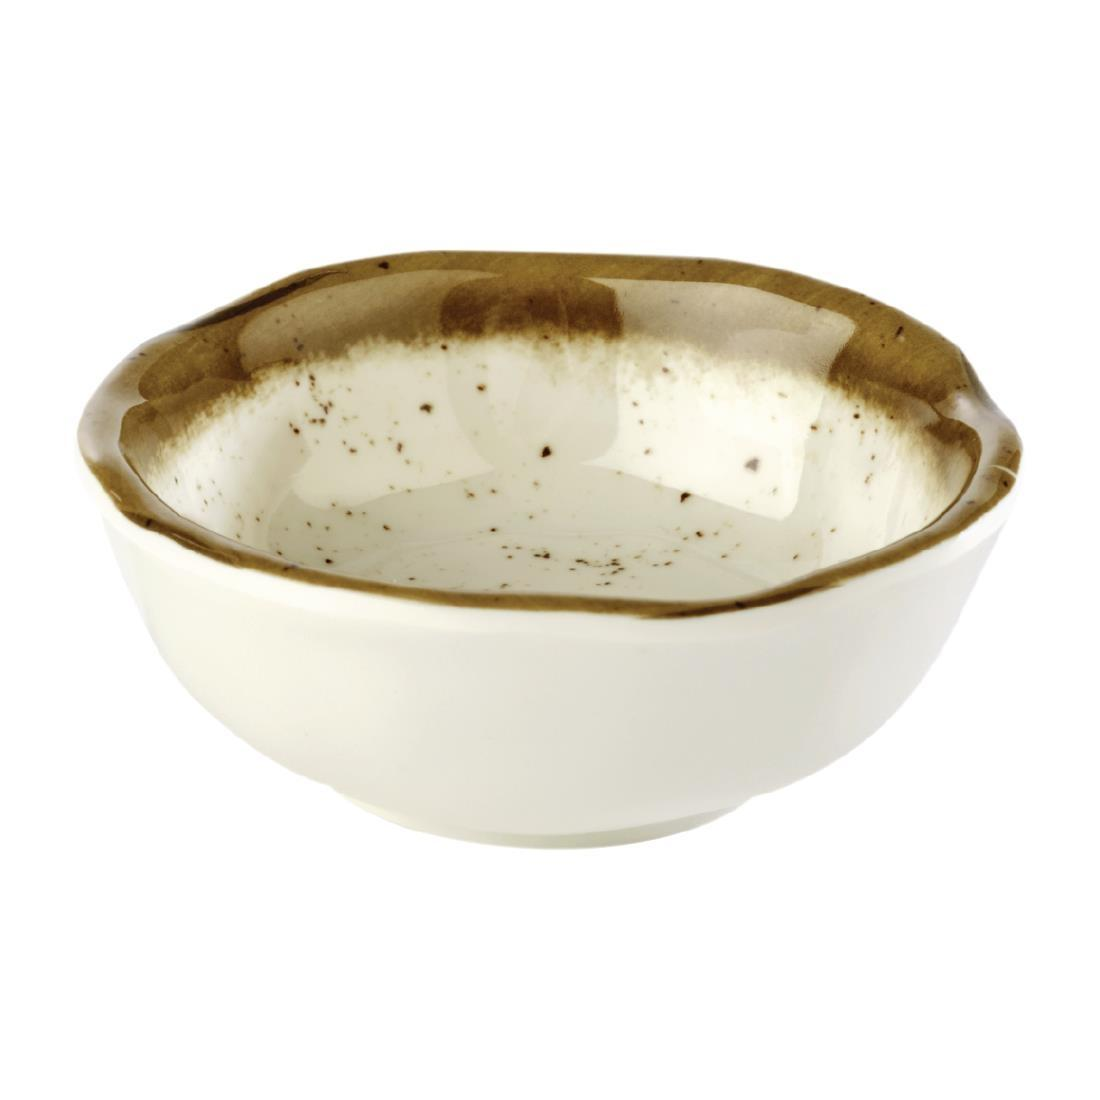 HC697 - APS Stone Art Bowl 80mm - Each - HC697